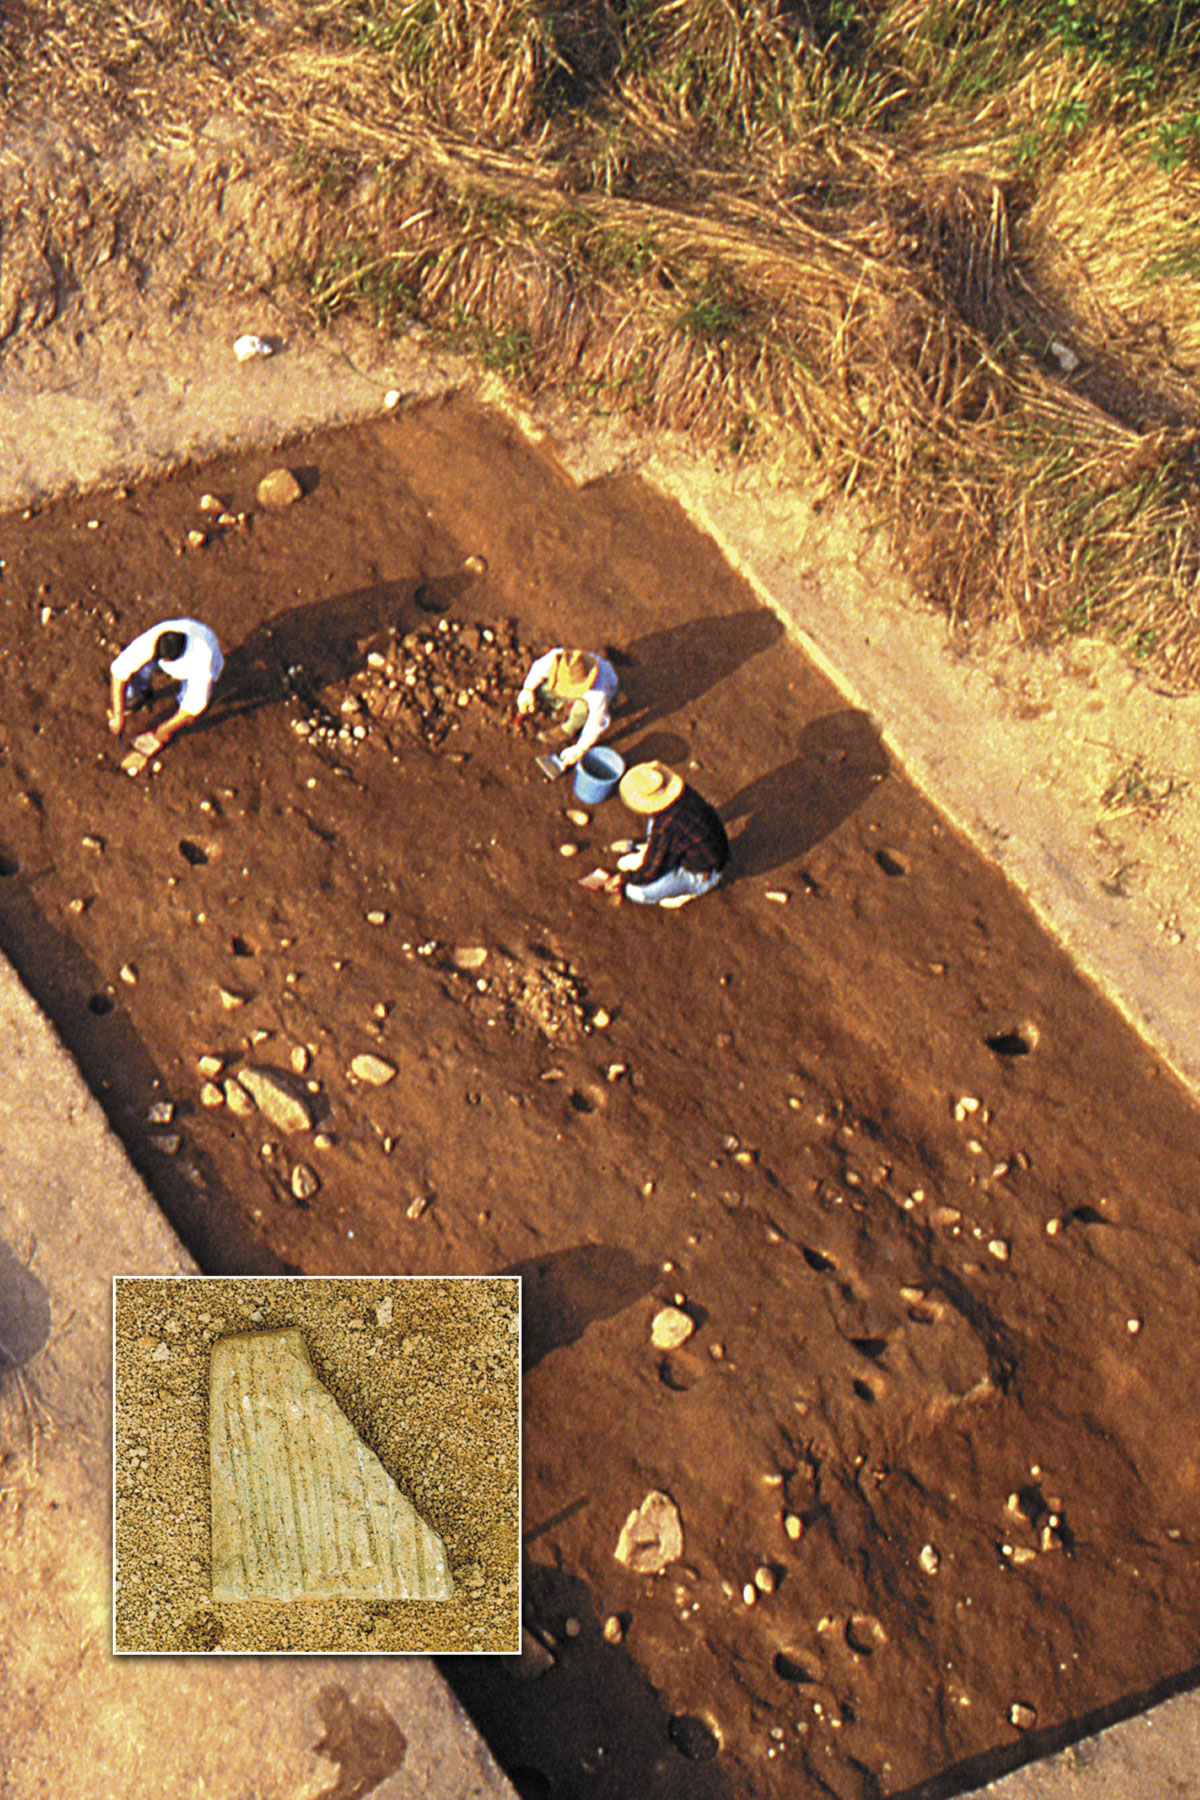 Stone beater in-situ near the 6,200-year-old house remains at the Tai Wan site in Hong Kong